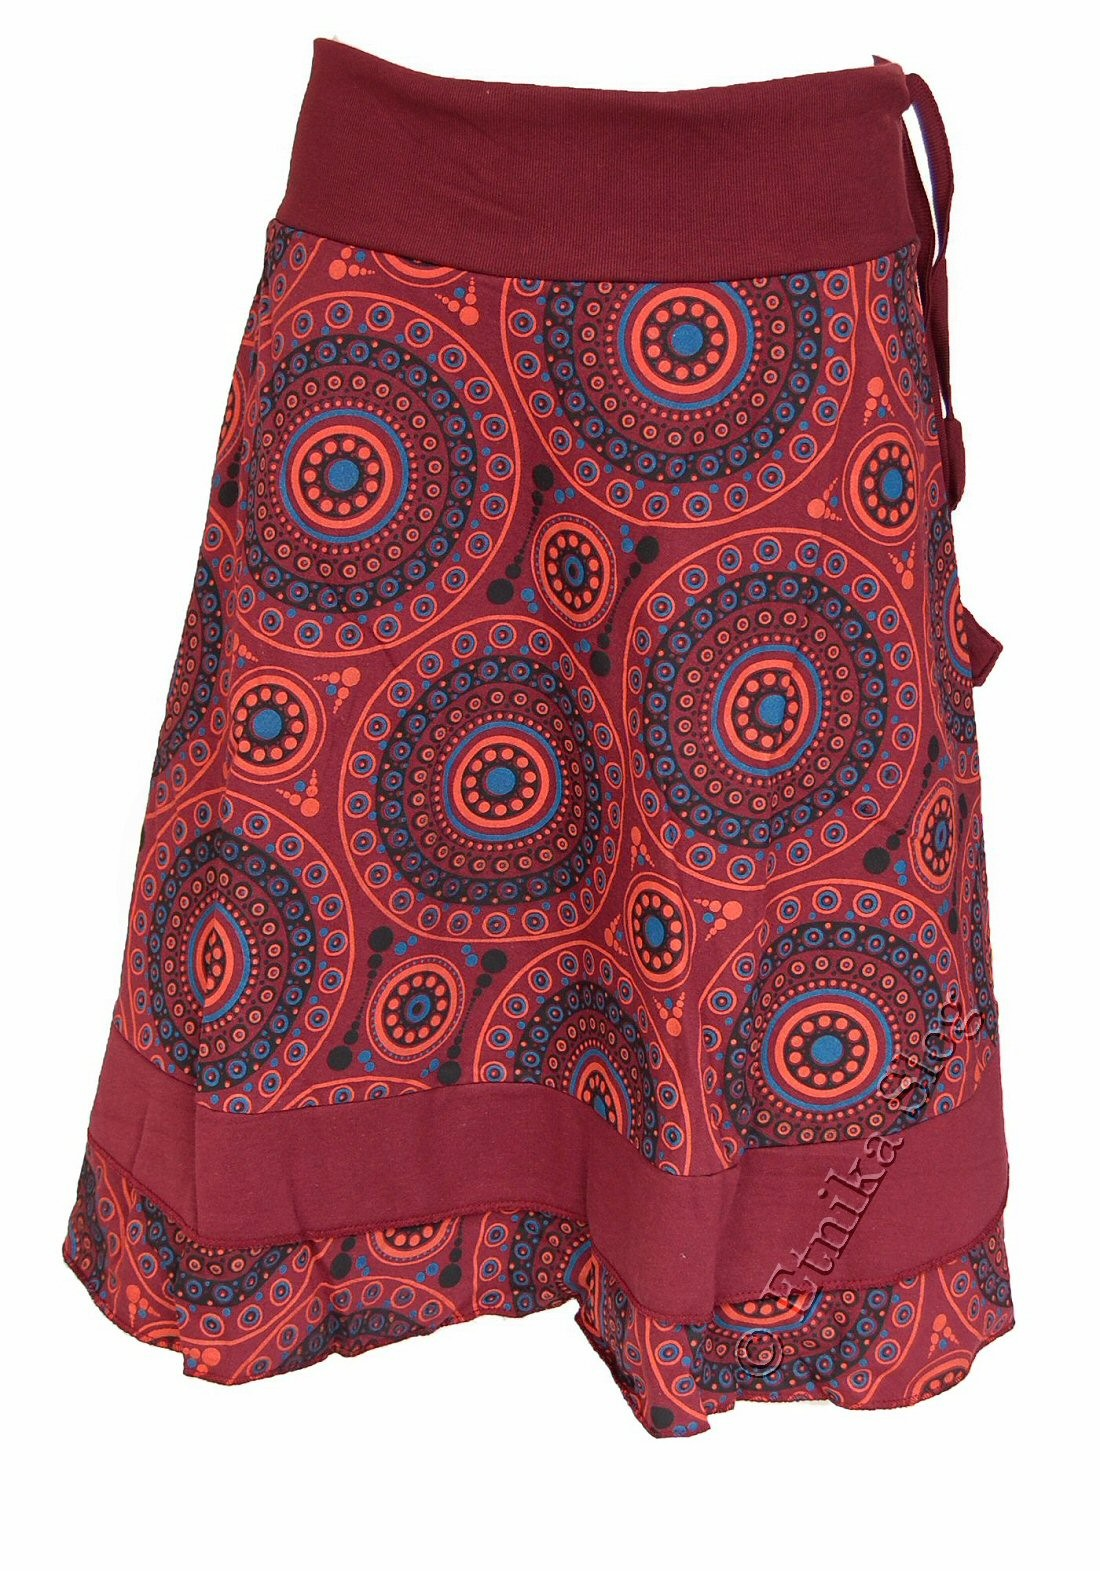 GONNE AUTUNNO / INVERNO AB-WWG03 - Oriente Import S.r.l.